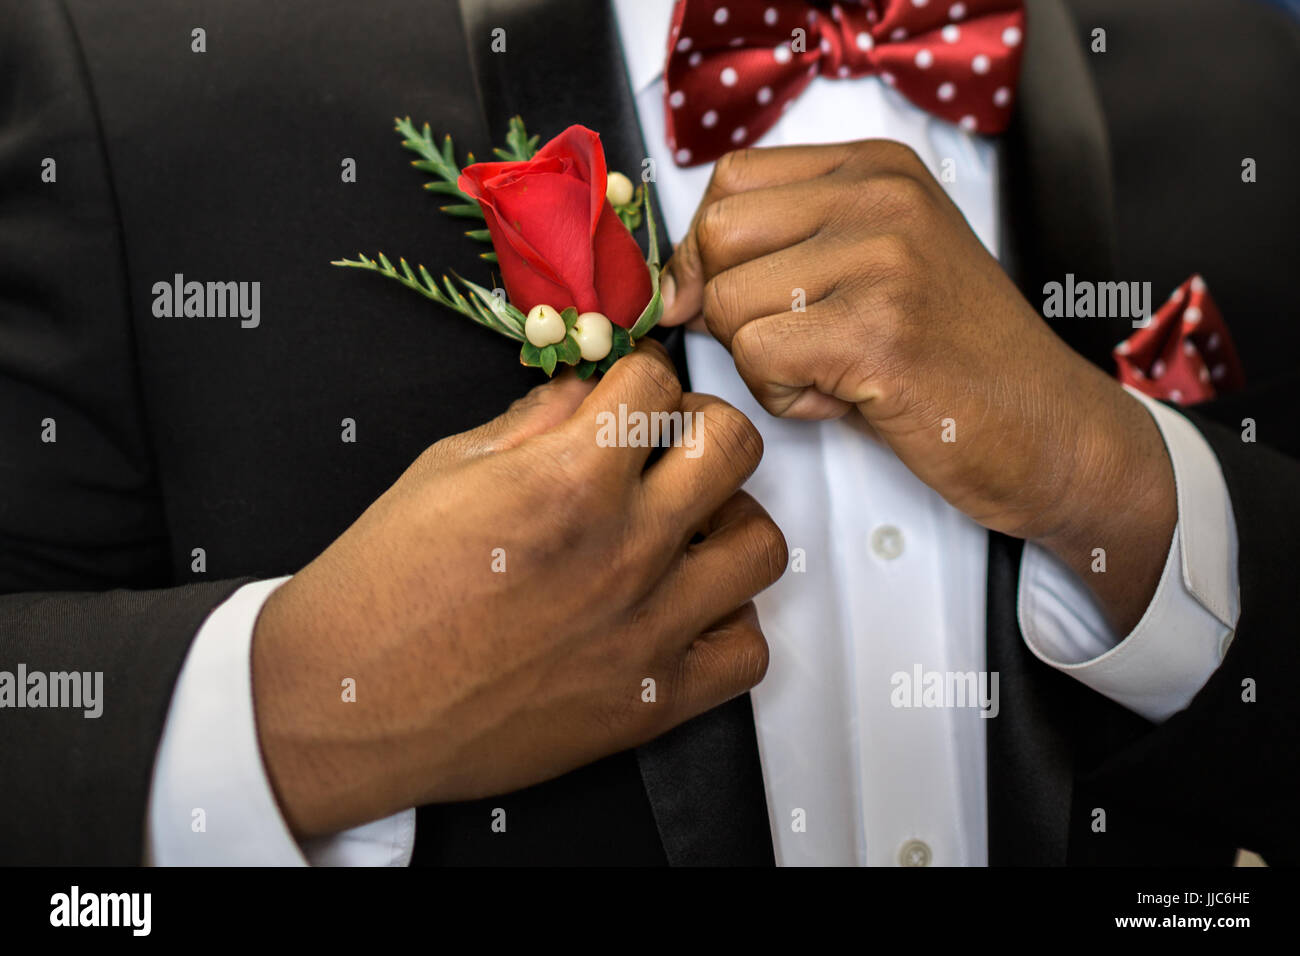 Teen pins his rose boutonniere to formal suit getting dressed and ready for prom. - Stock Image